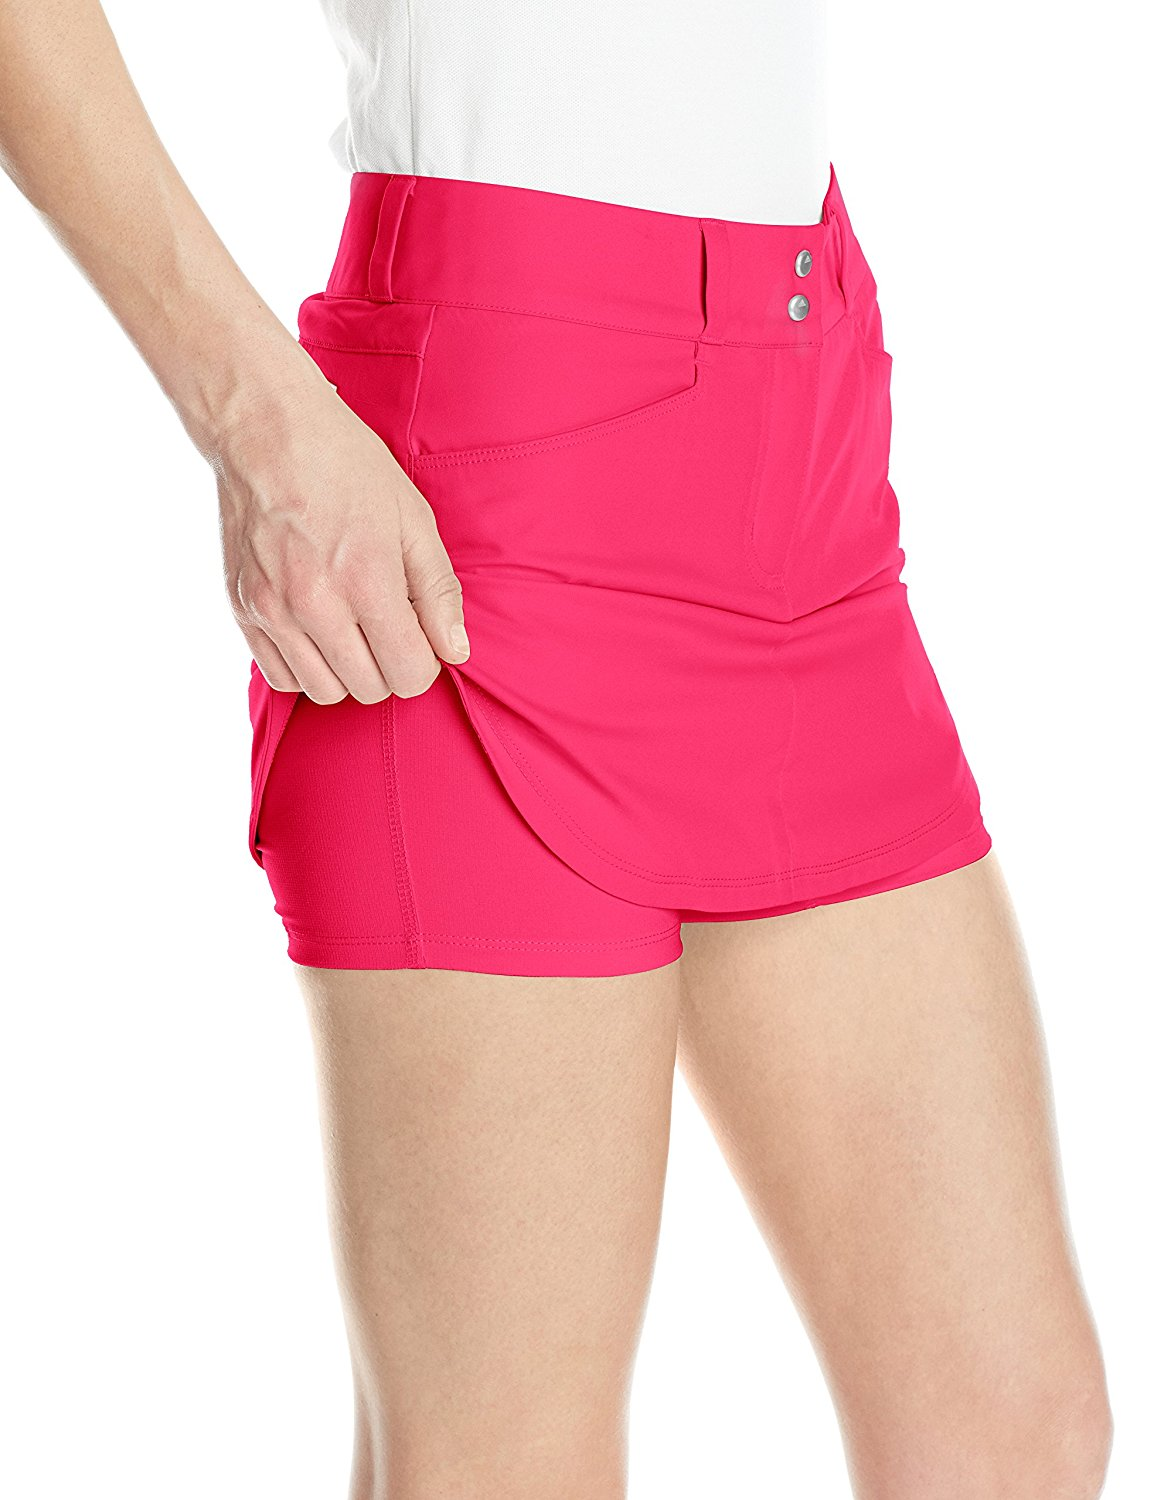 Adidas-Golf-Women-039-s-Essentials-3-Stripes-Skort-Pick-Size-amp-Color thumbnail 12